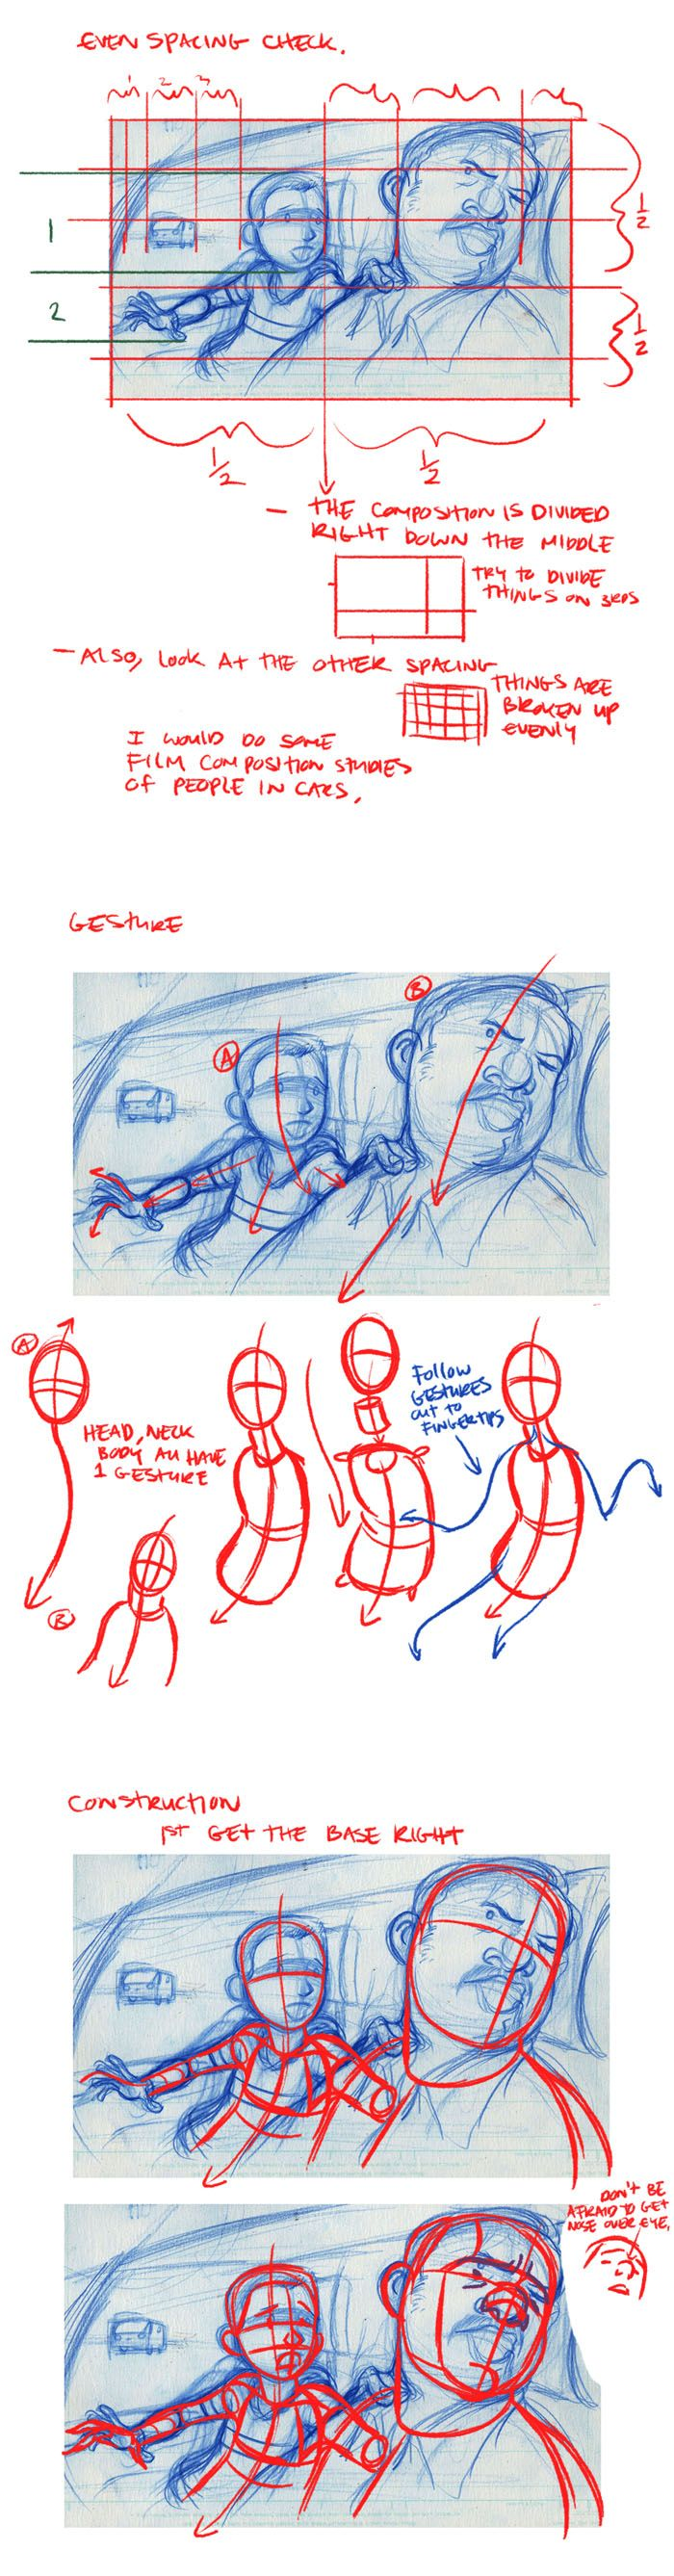 Spacing -> Gesture -> Construction - good illustration always has thought behind it.  This links to a great site about storyboards.